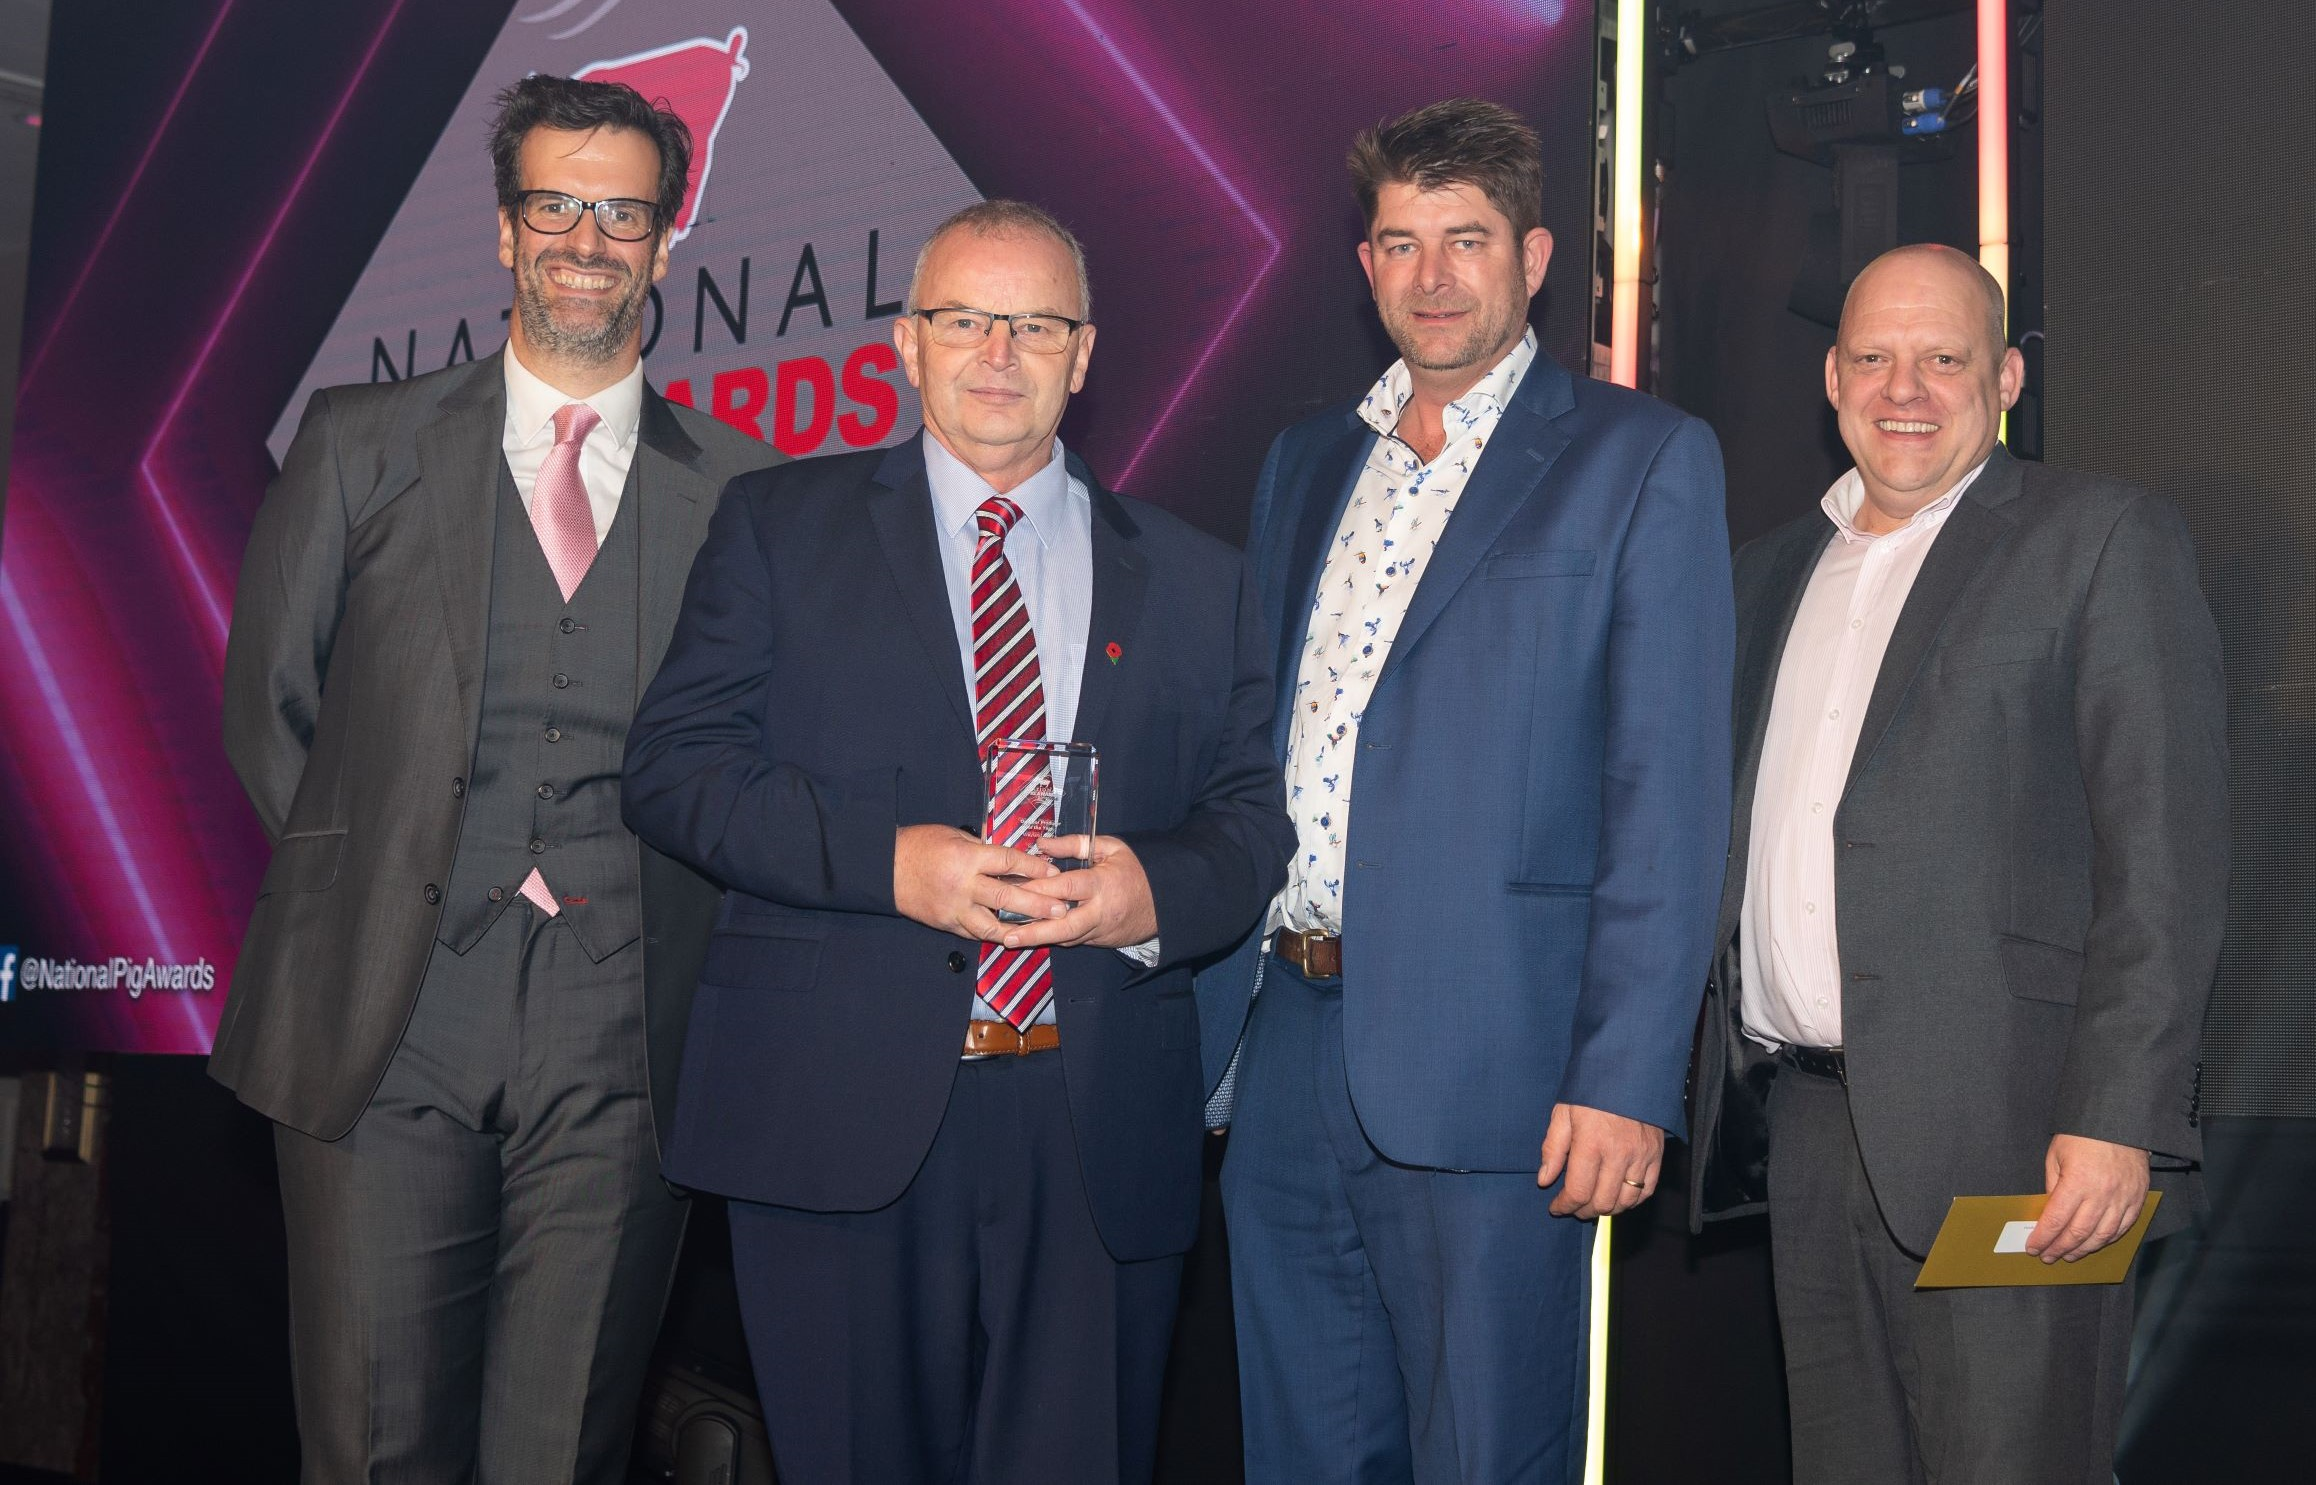 Wayland Farms 2019 Outdoor Pig Producer of the Year